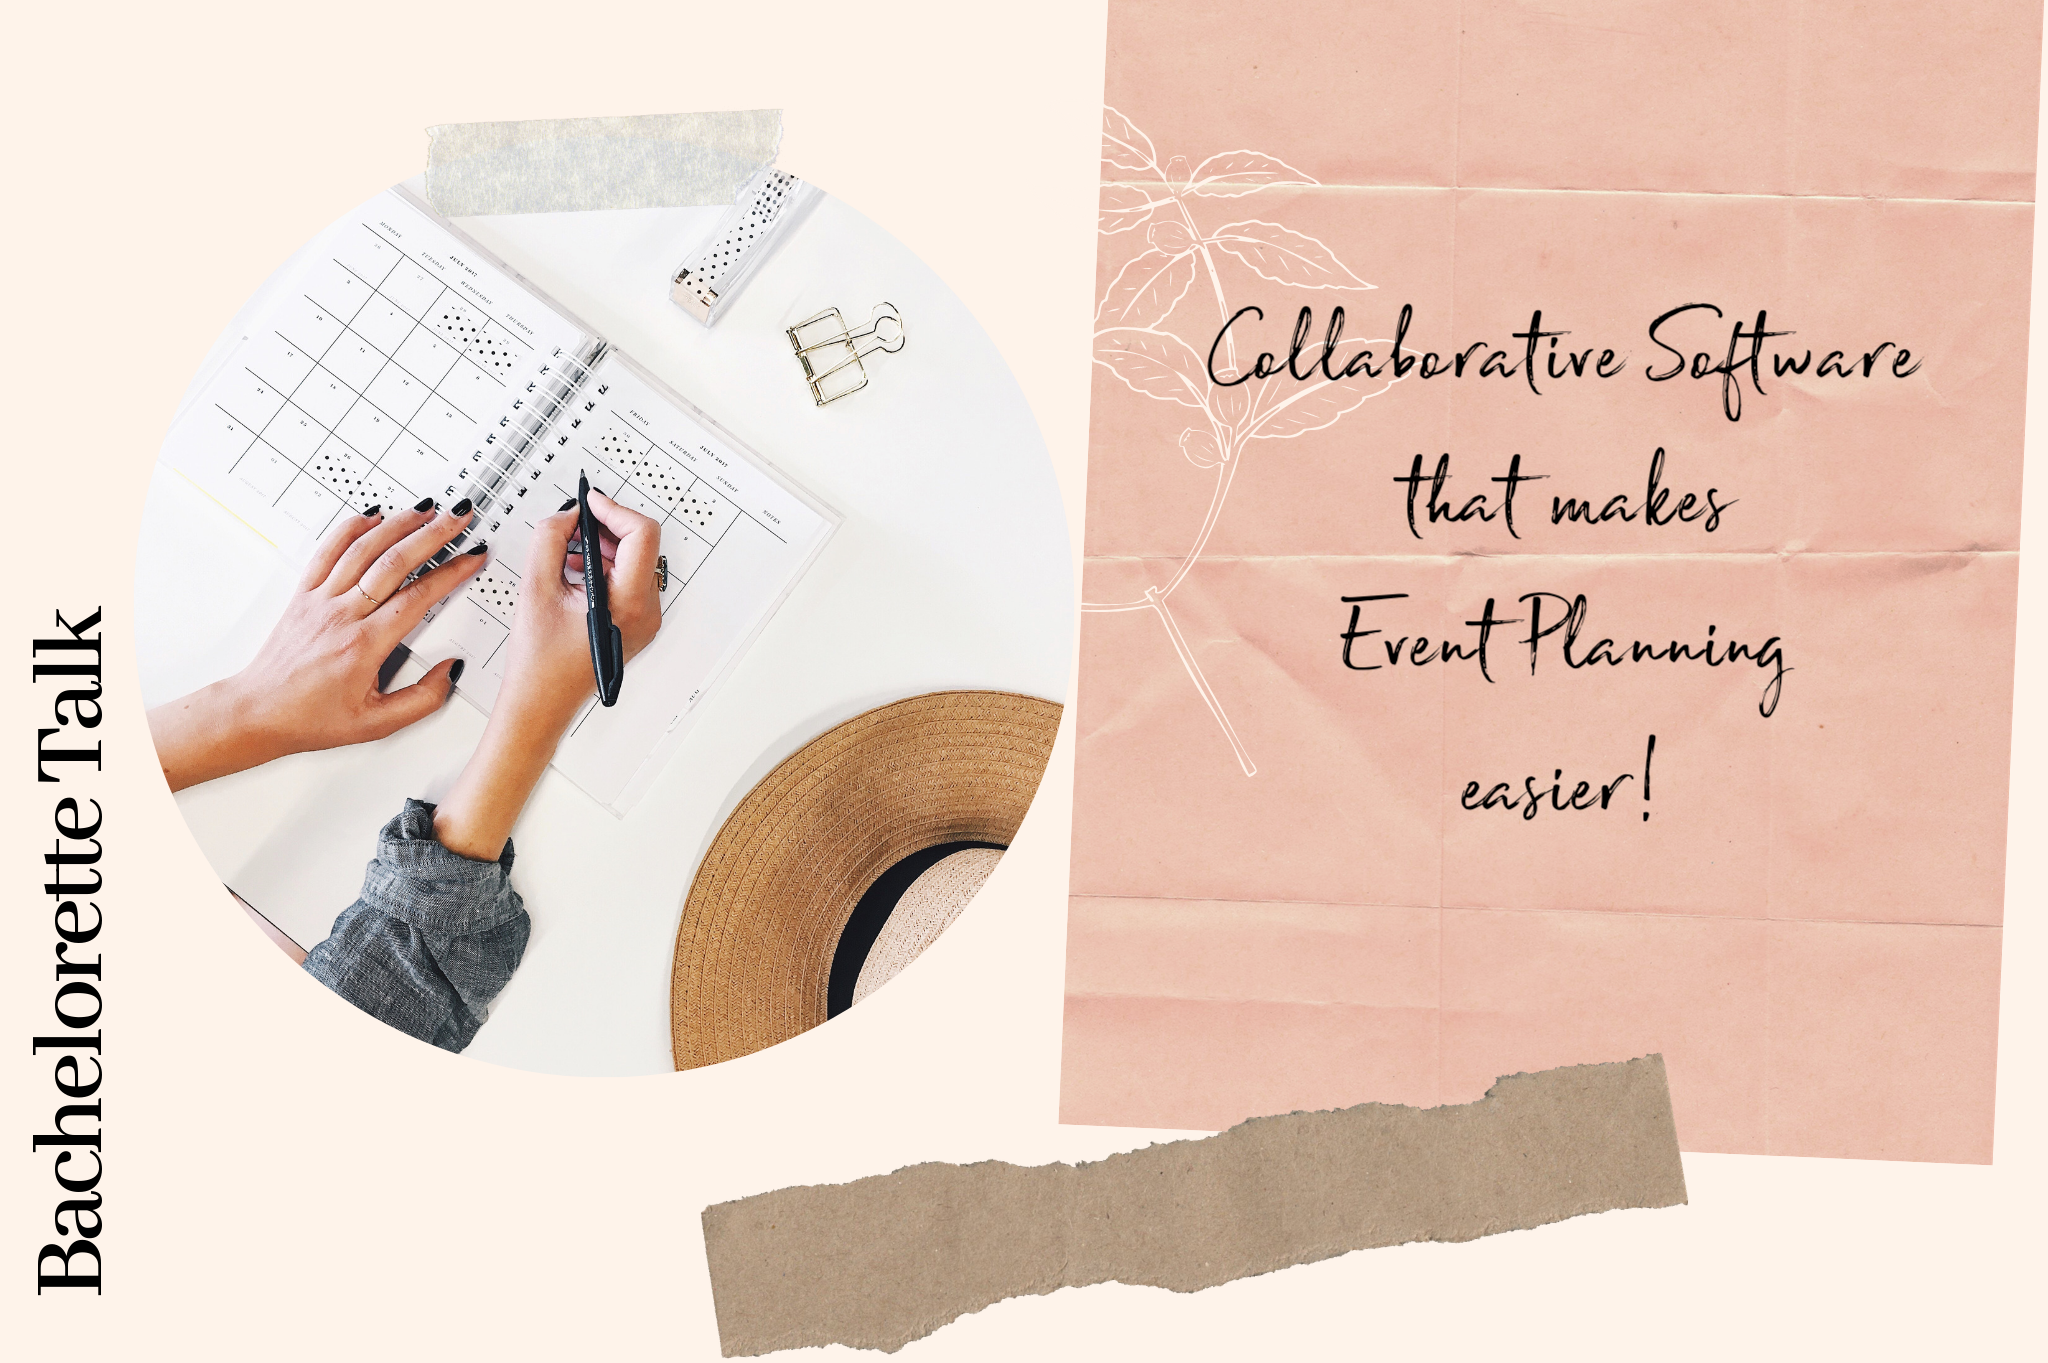 collaborative software for event planning programs bachelorette weekend party planning help organization